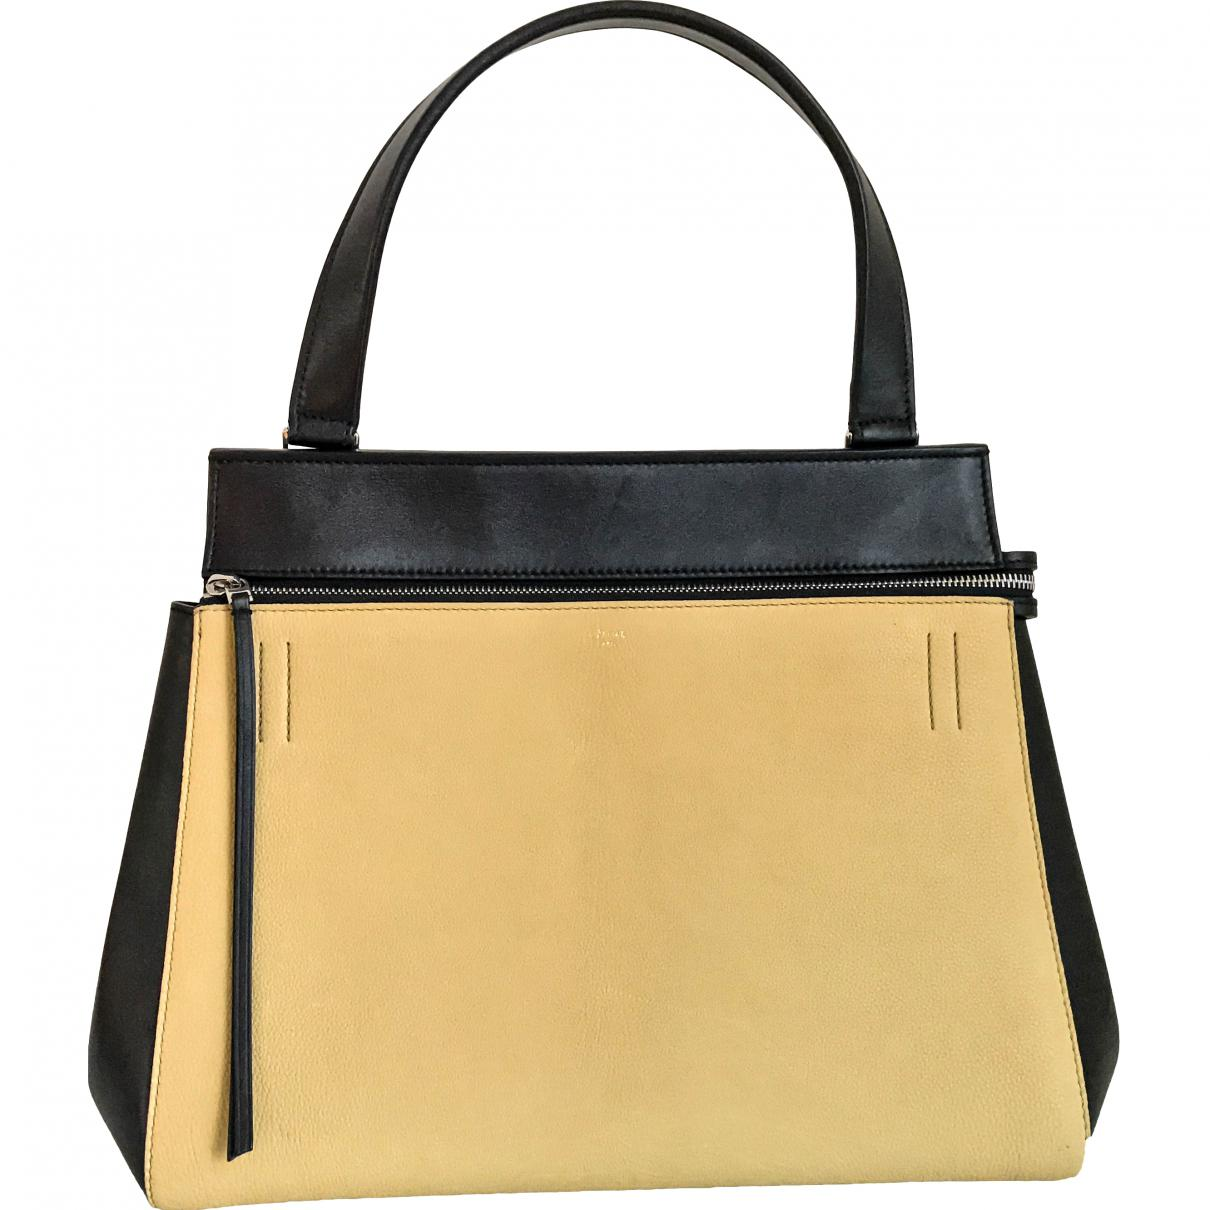 Pre-owned - Edge leather bag Celine Cheap Cheap Online 2ySDTR